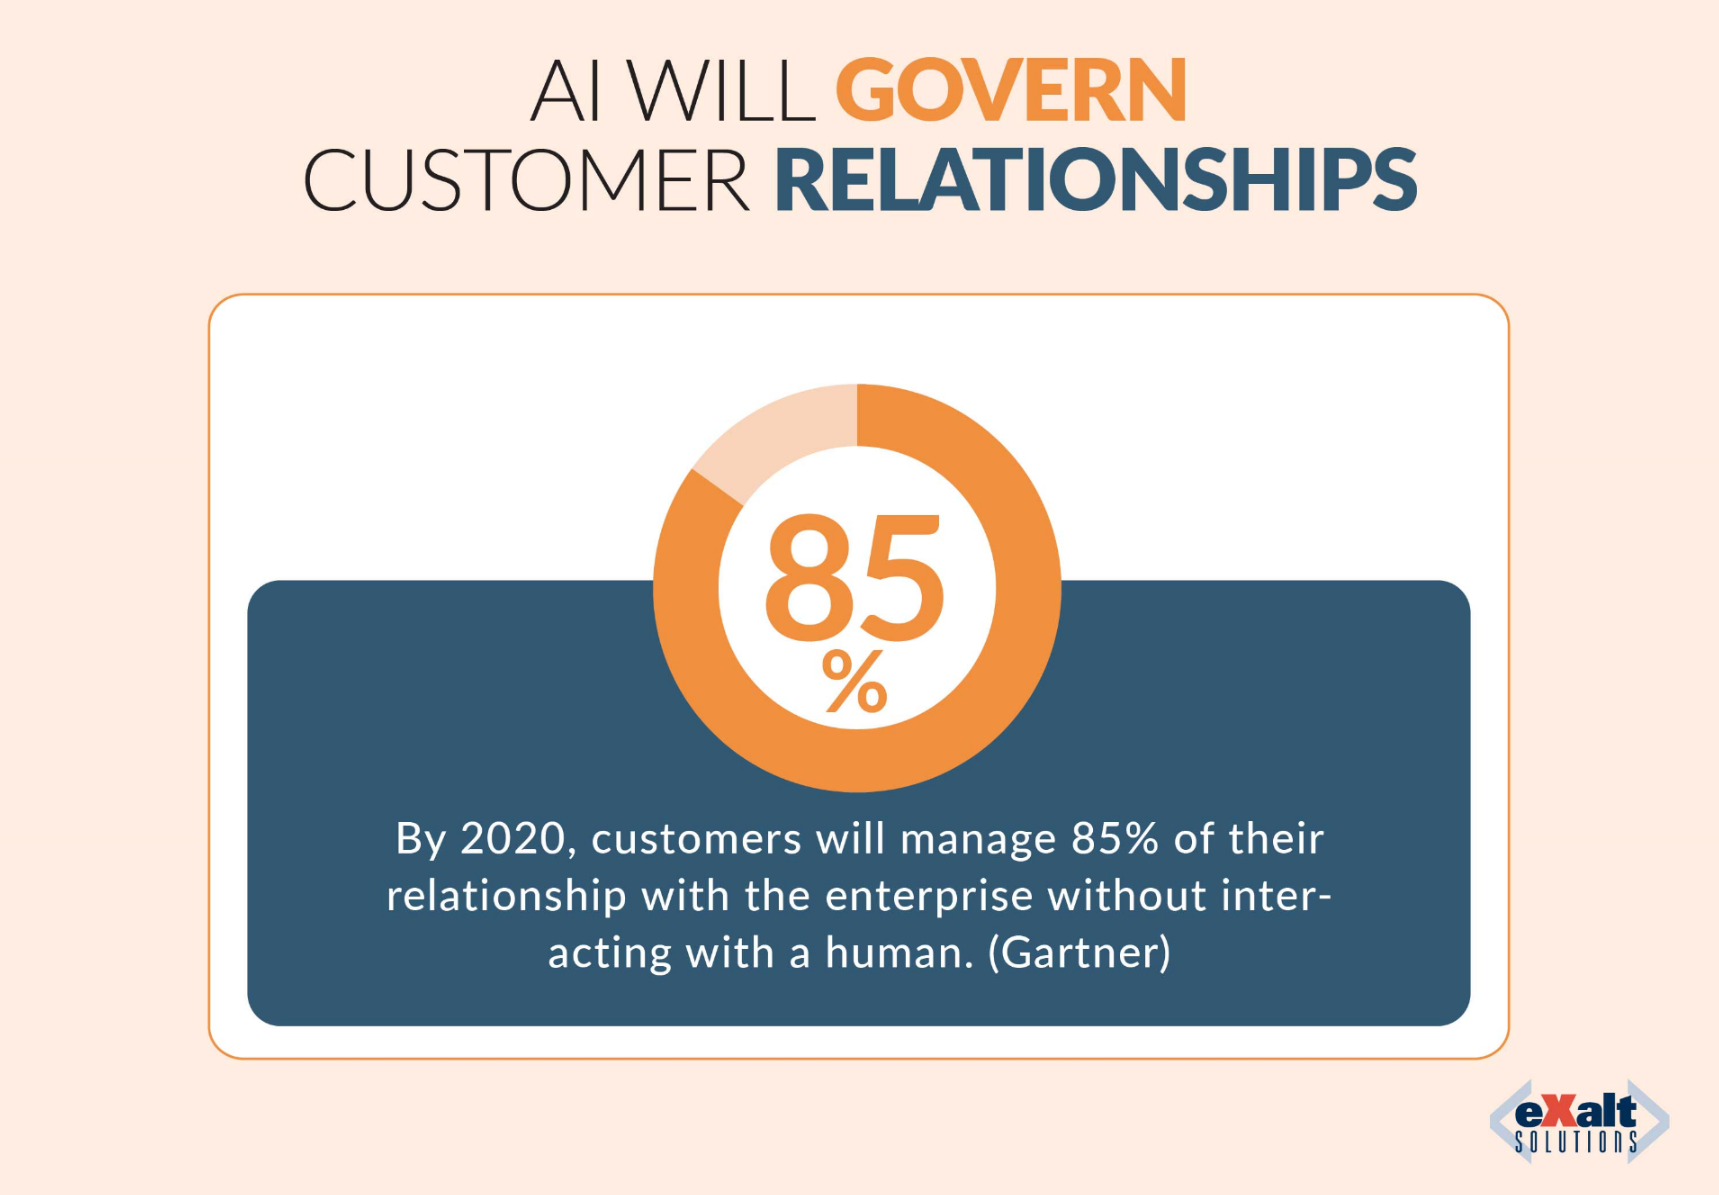 AI will govern customer relationships